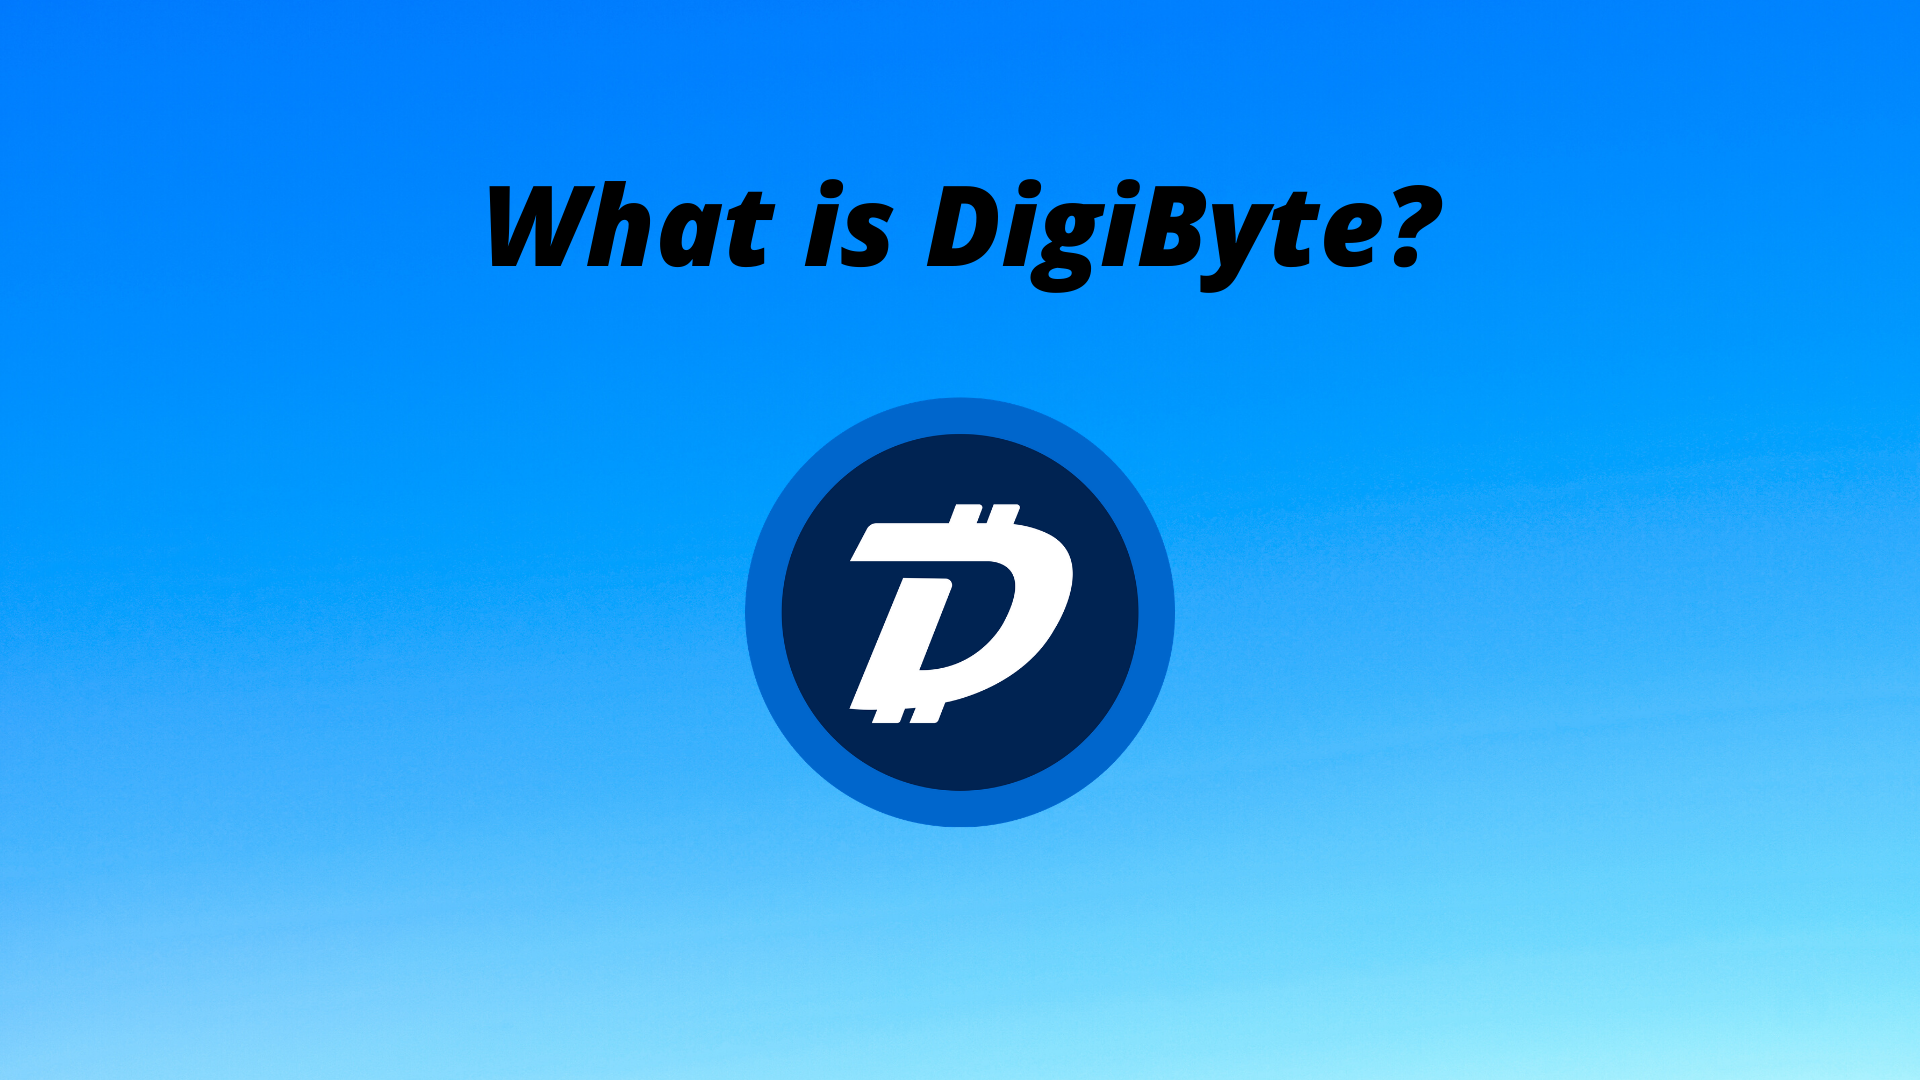 What is Digibyte Cryptocurrency?